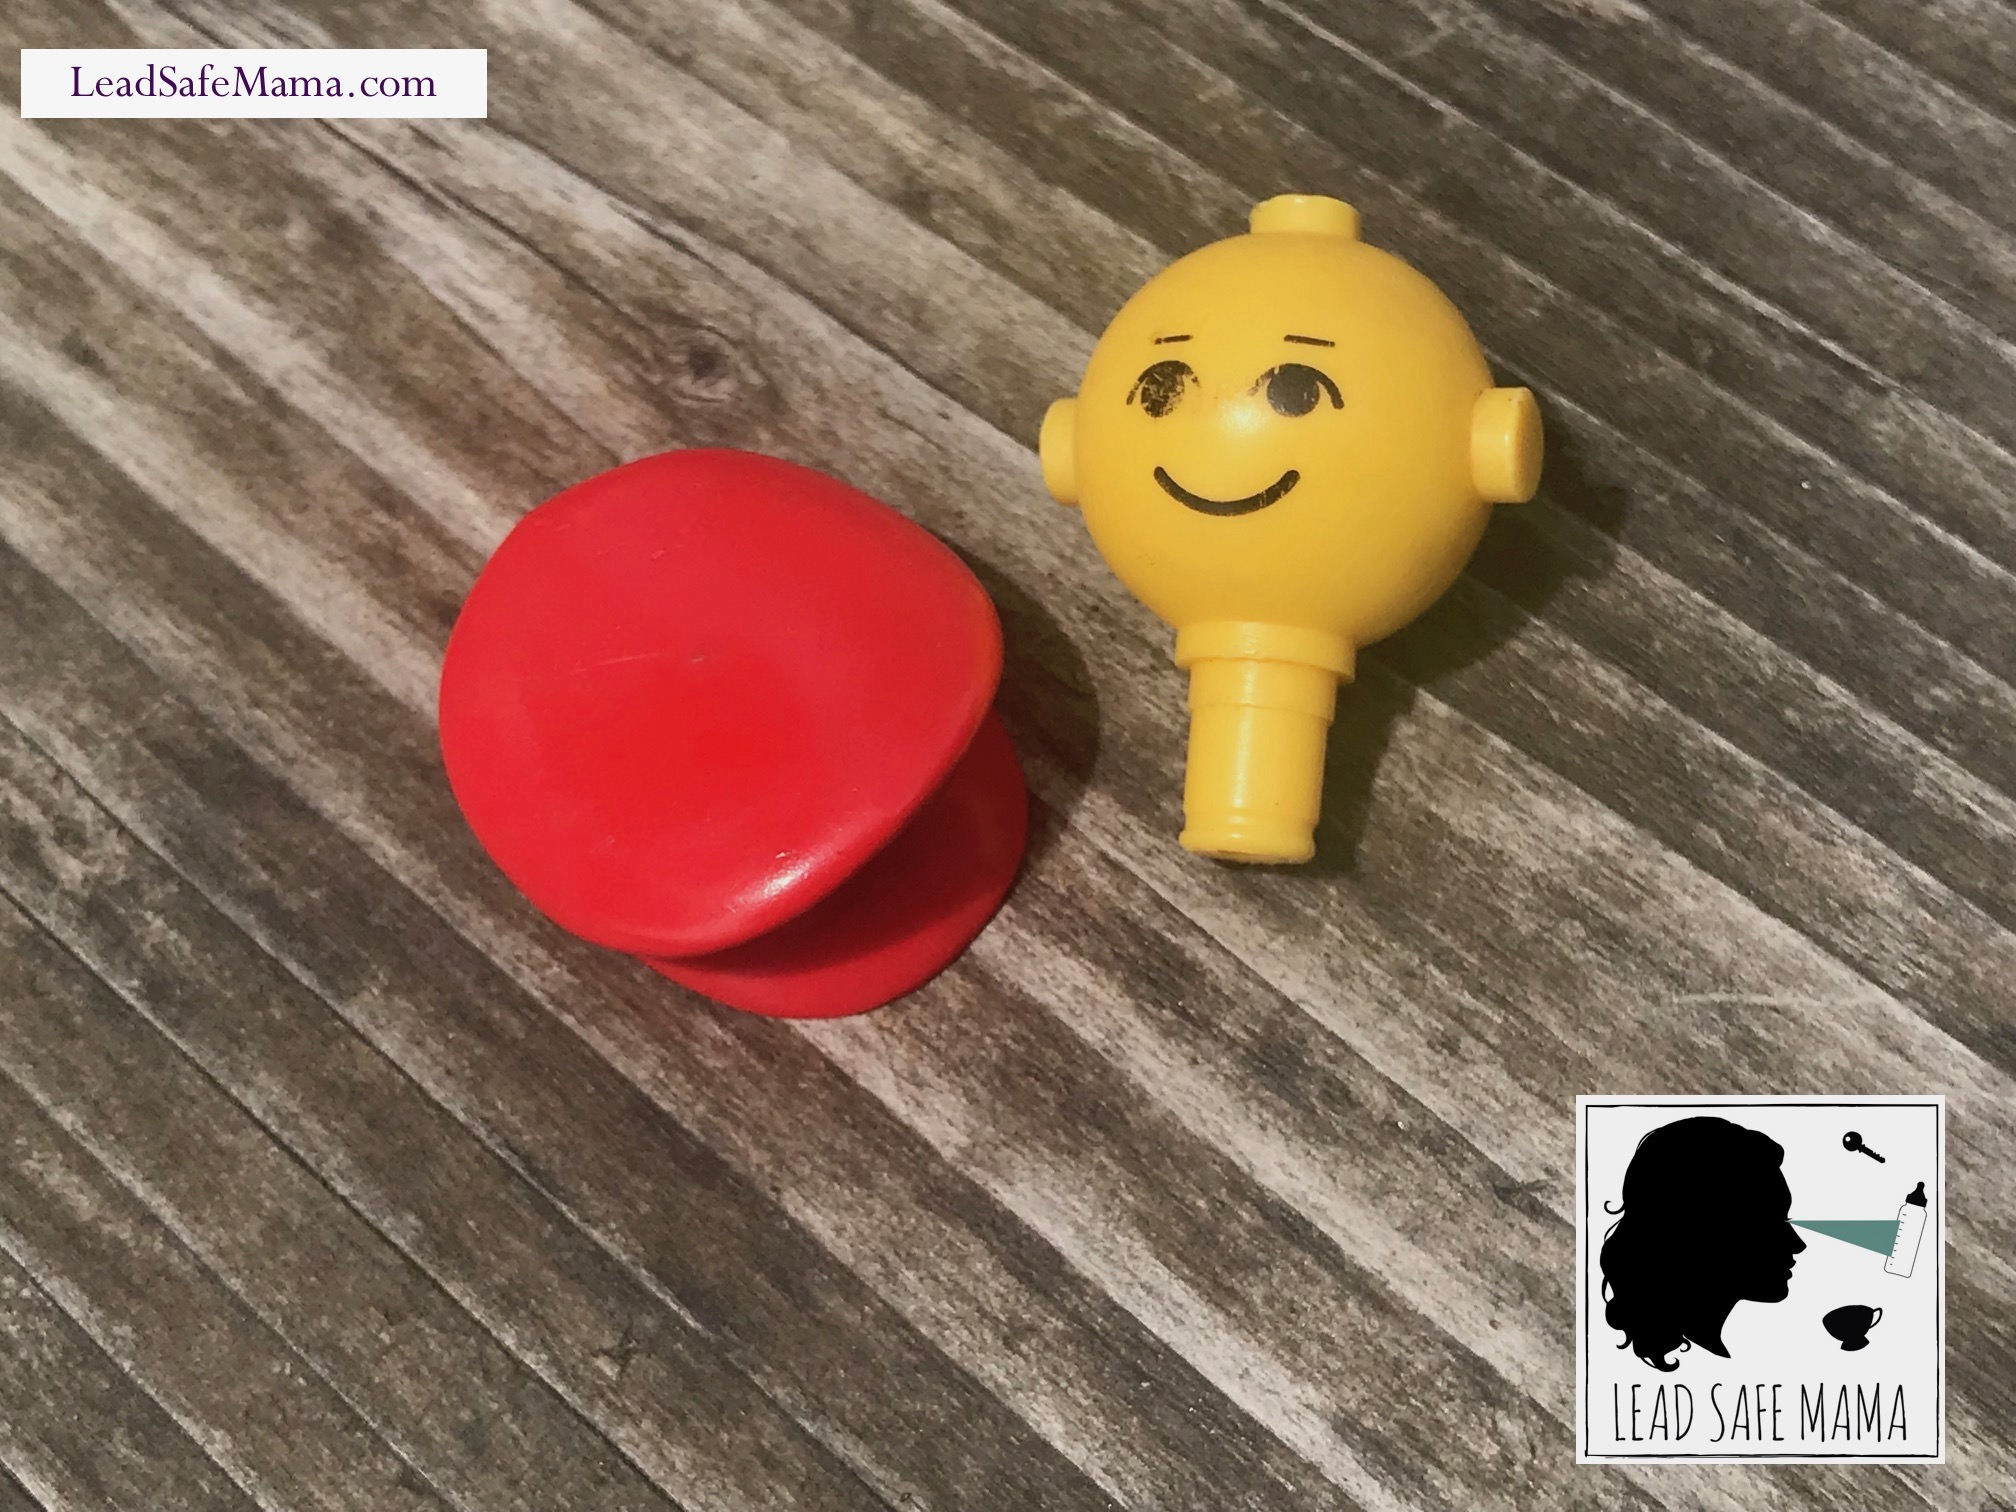 Vintage (1978-1988) red & yellow Lego® head with hat: 5,096 ppm Cadmium [≥40 is unsafe] & 26 ppm Arsenic